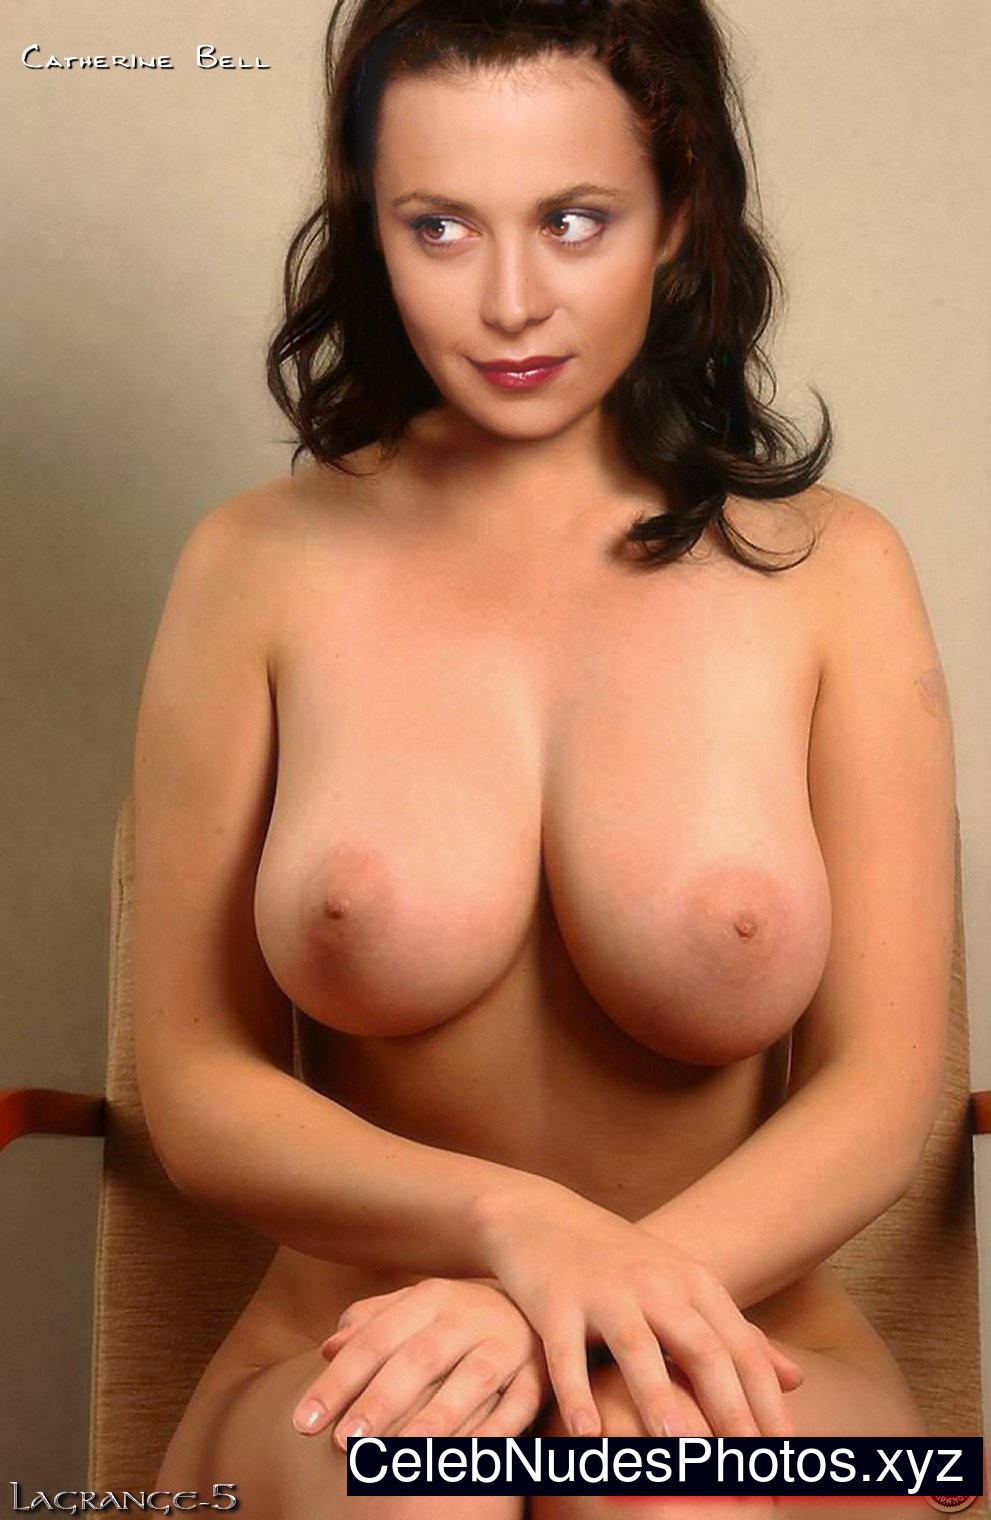 Kevin hart nude pictures